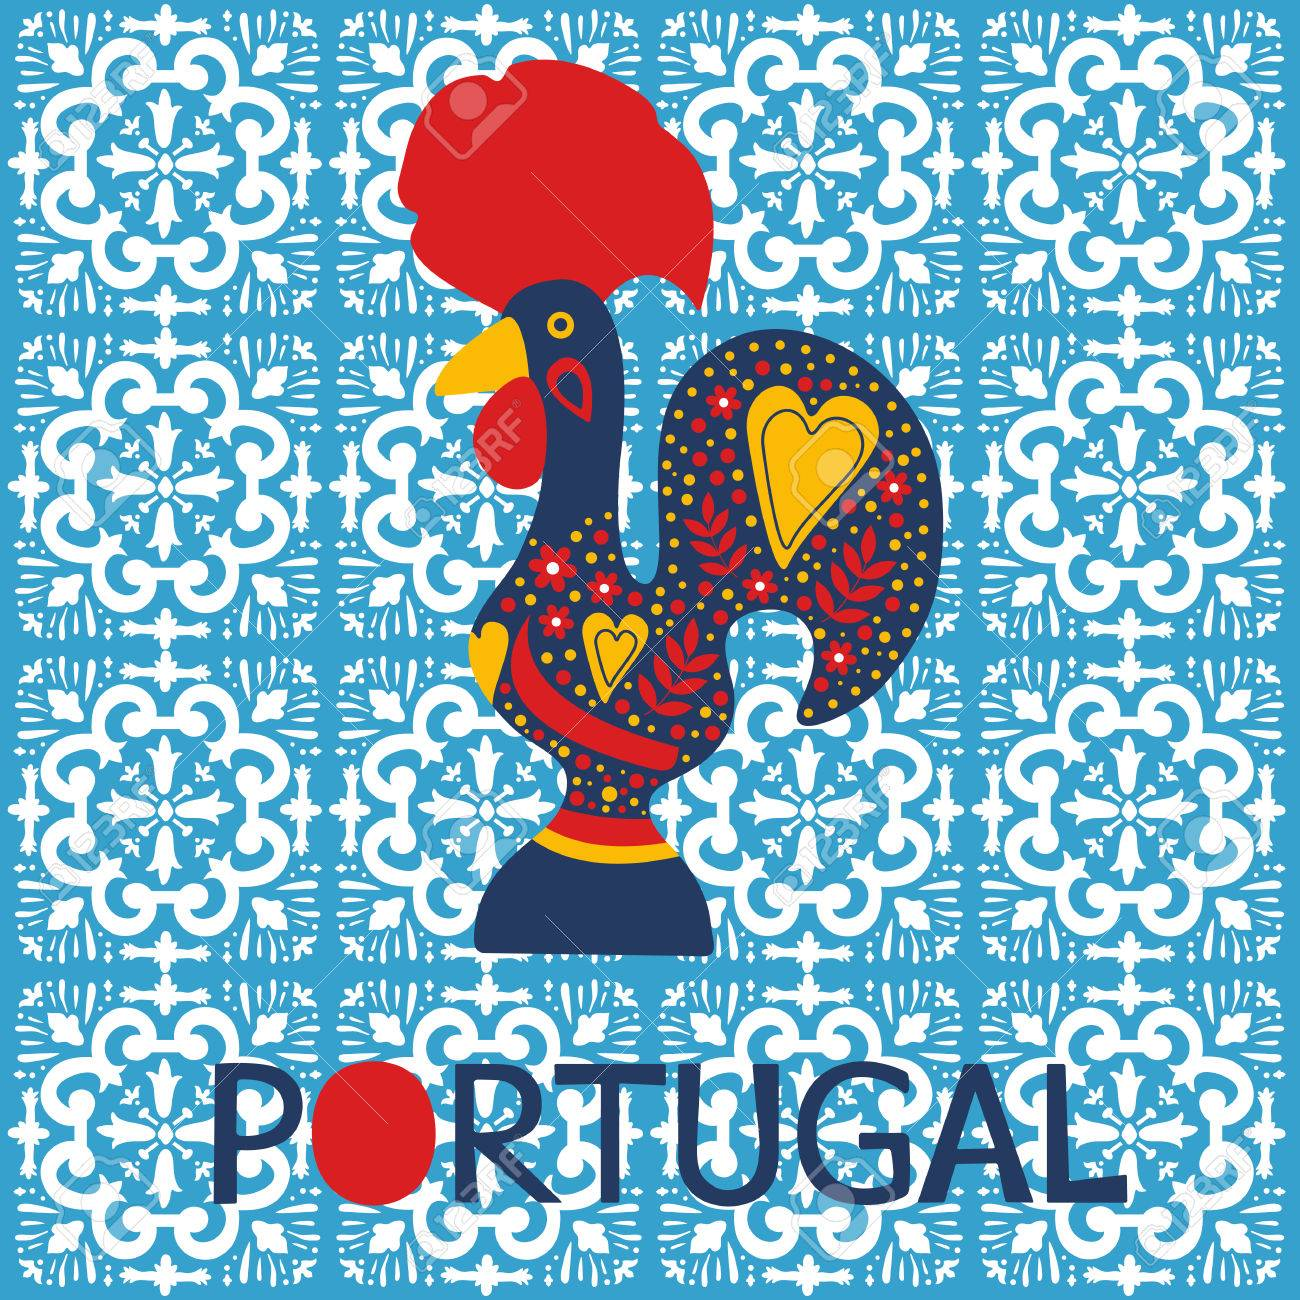 https://previews.123rf.com/images/olillia/olillia1507/olillia150700122/42728973-illustration-of-decorated-barcelos-rooster-symbol-of-portugal-vector-illustration-Stock-Photo.jpg